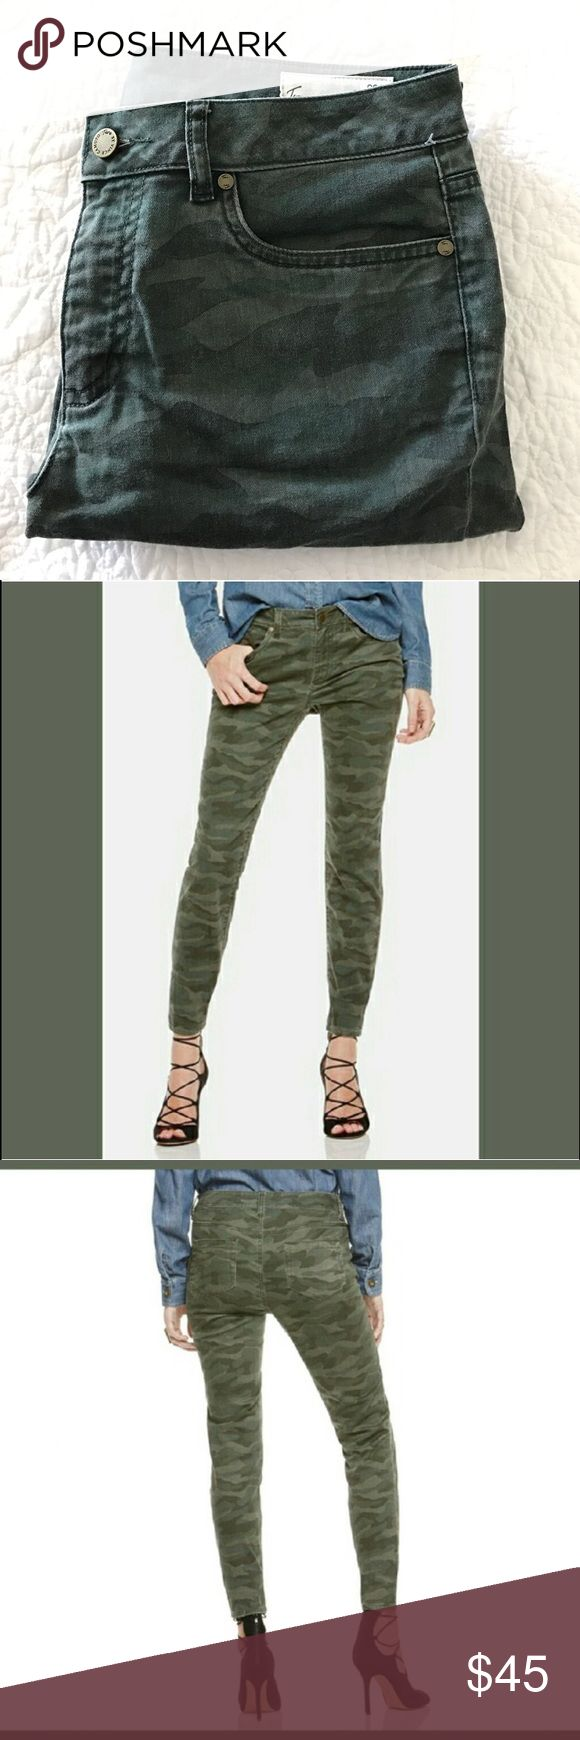 Vince Camuto camo jeans These jeans are in excellent condition. Straight/skinny leg, camo print, with five pockets. Super cute with flats or boots or heels, really with anything 🤗🤗 please let me know if you have any questions and feel free to make an offer ❤️ Two by Vince Camuto Jeans Straight Leg